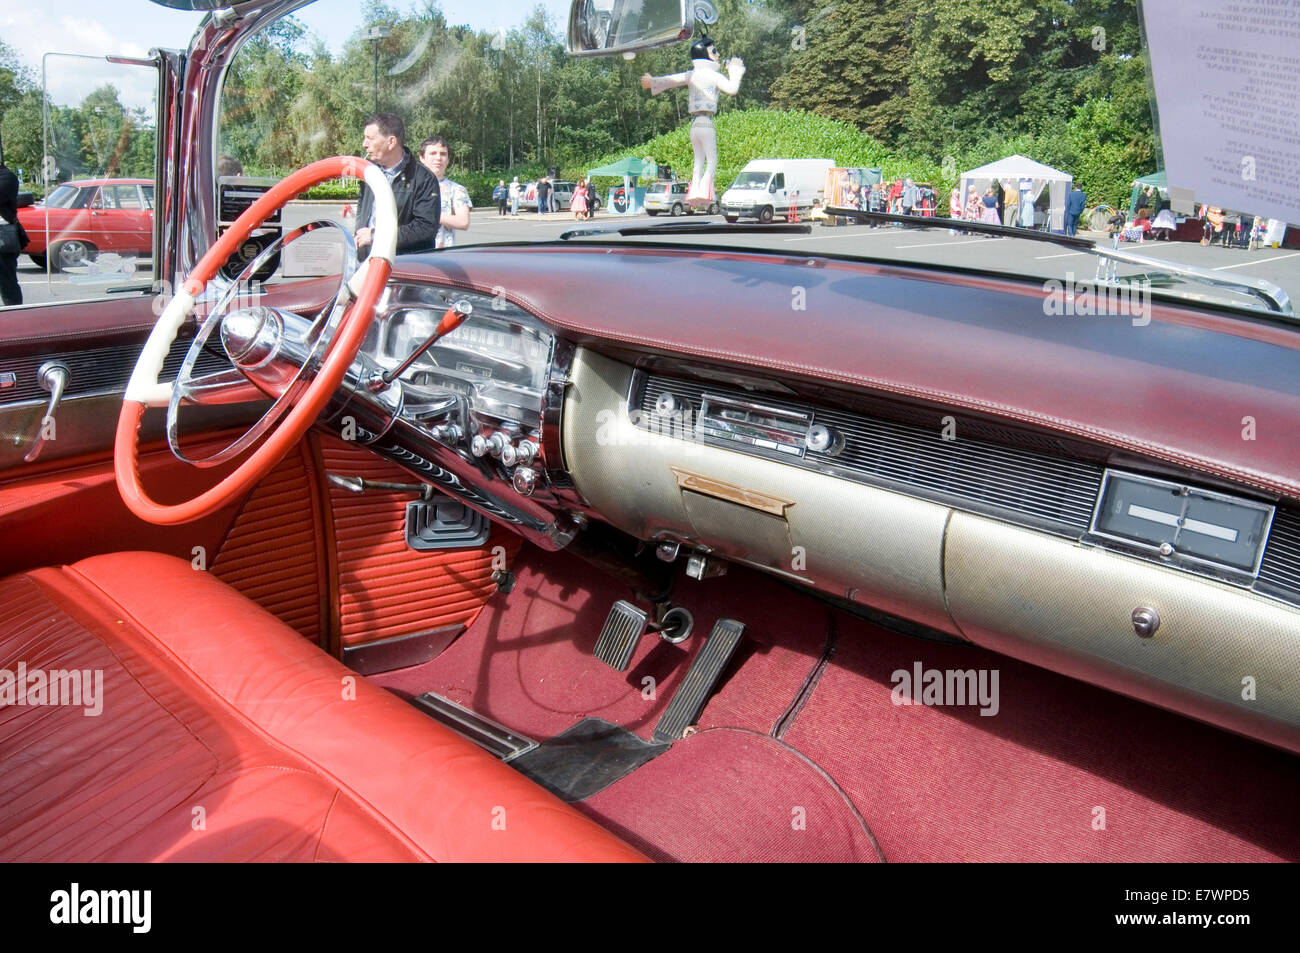 cadillac car cars interior softtop soft top tops convertible inside     cadillac car cars interior softtop soft top tops convertible inside  convertibles fifties 1954 classic american big steering whee